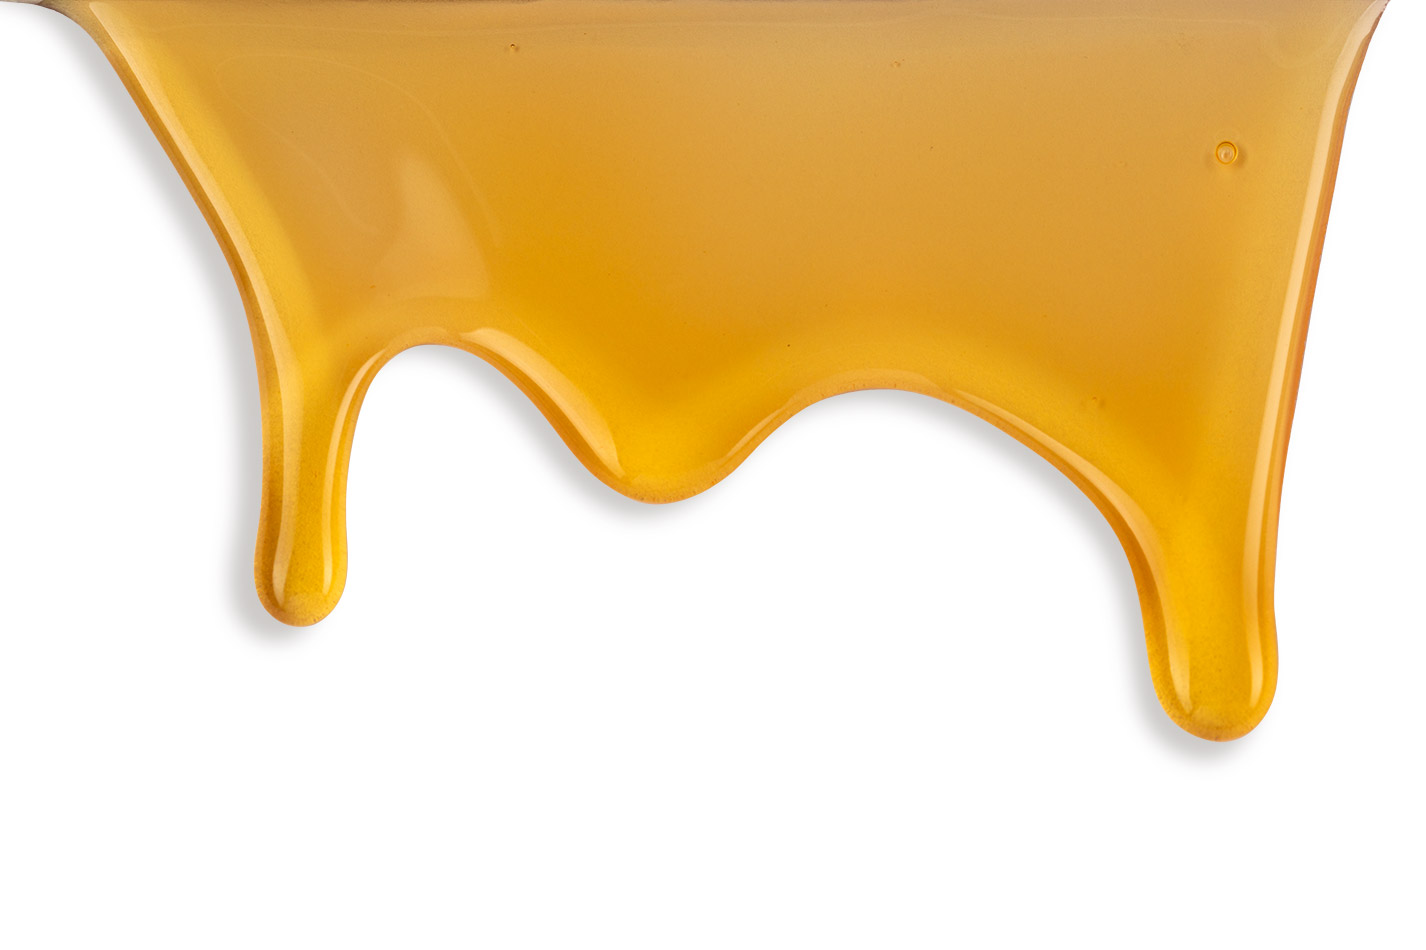 OIL_SELECTS-0052_Drip